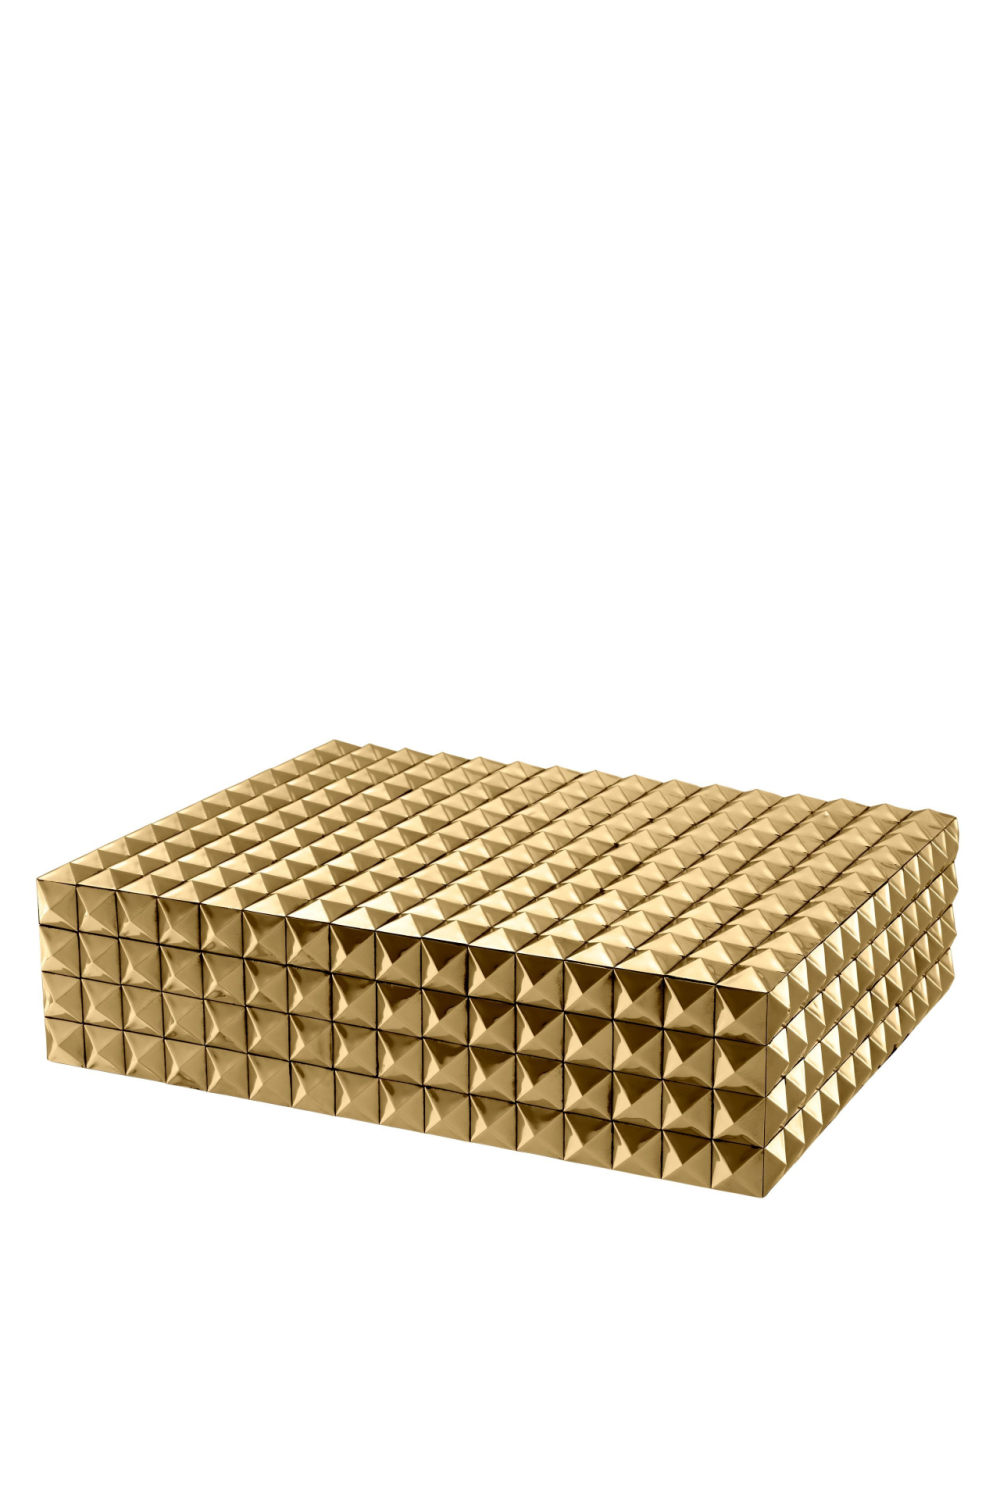 Gold Storage Box | Eichholtz Vivienne L